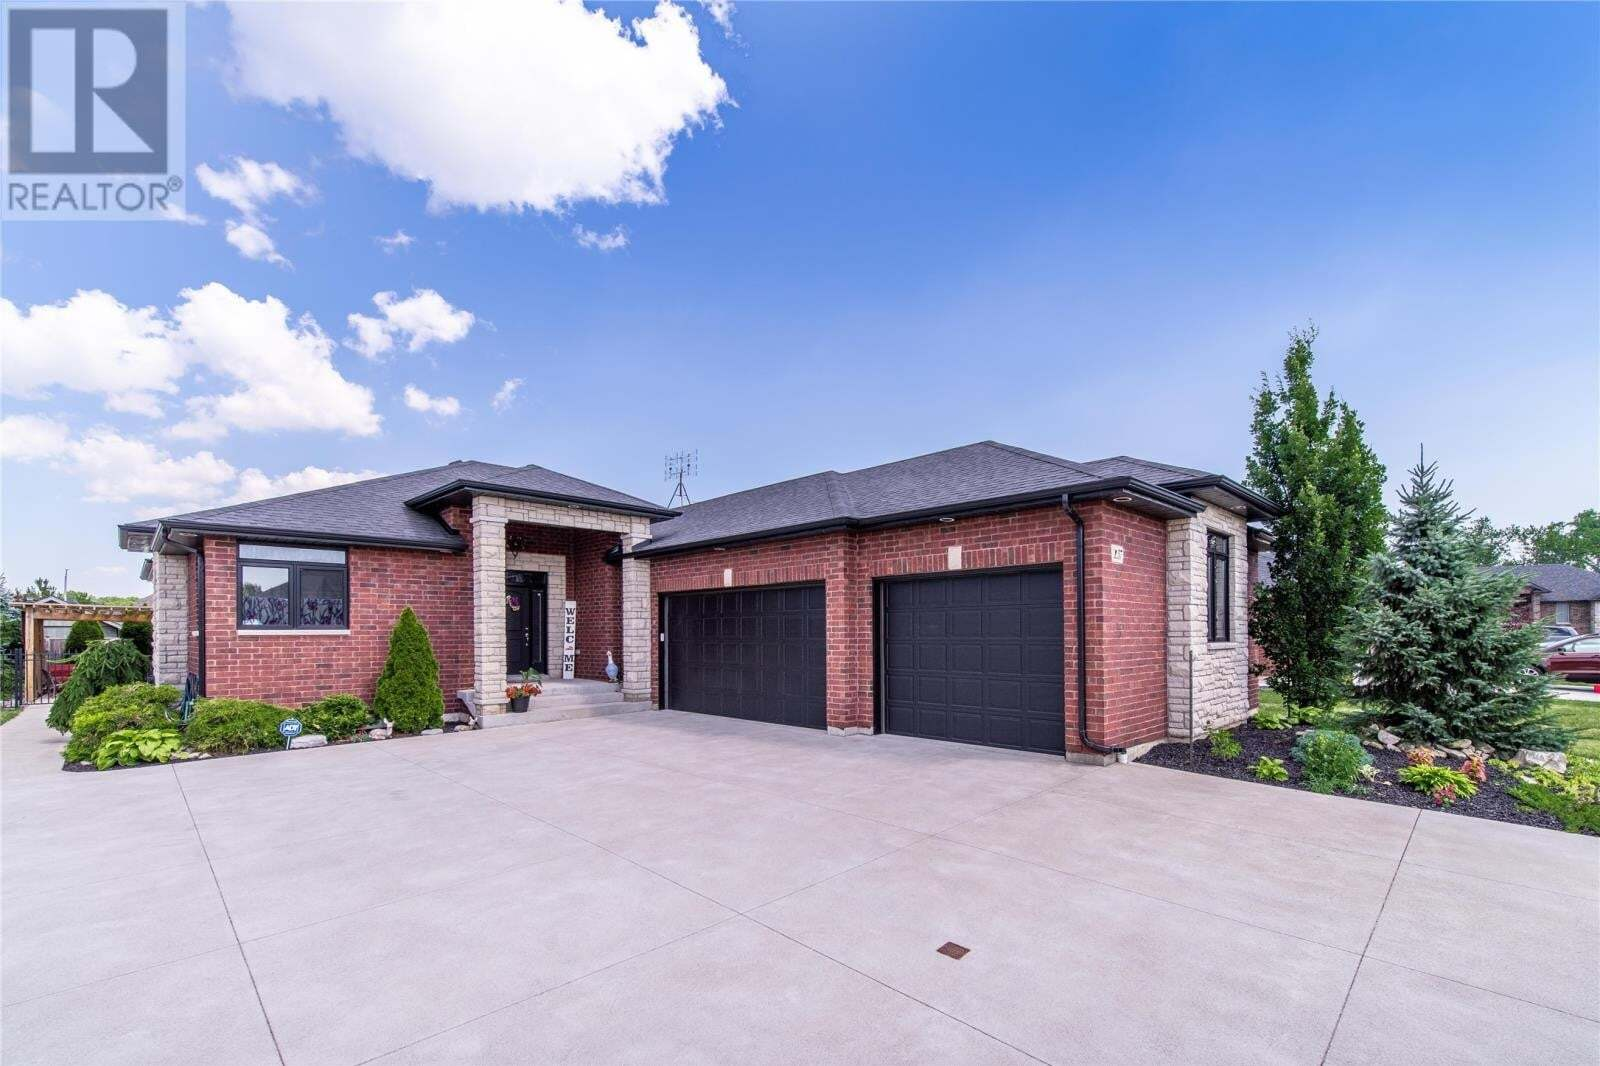 House for sale at 137 Goodburn Ct Essex Ontario - MLS: 20007987